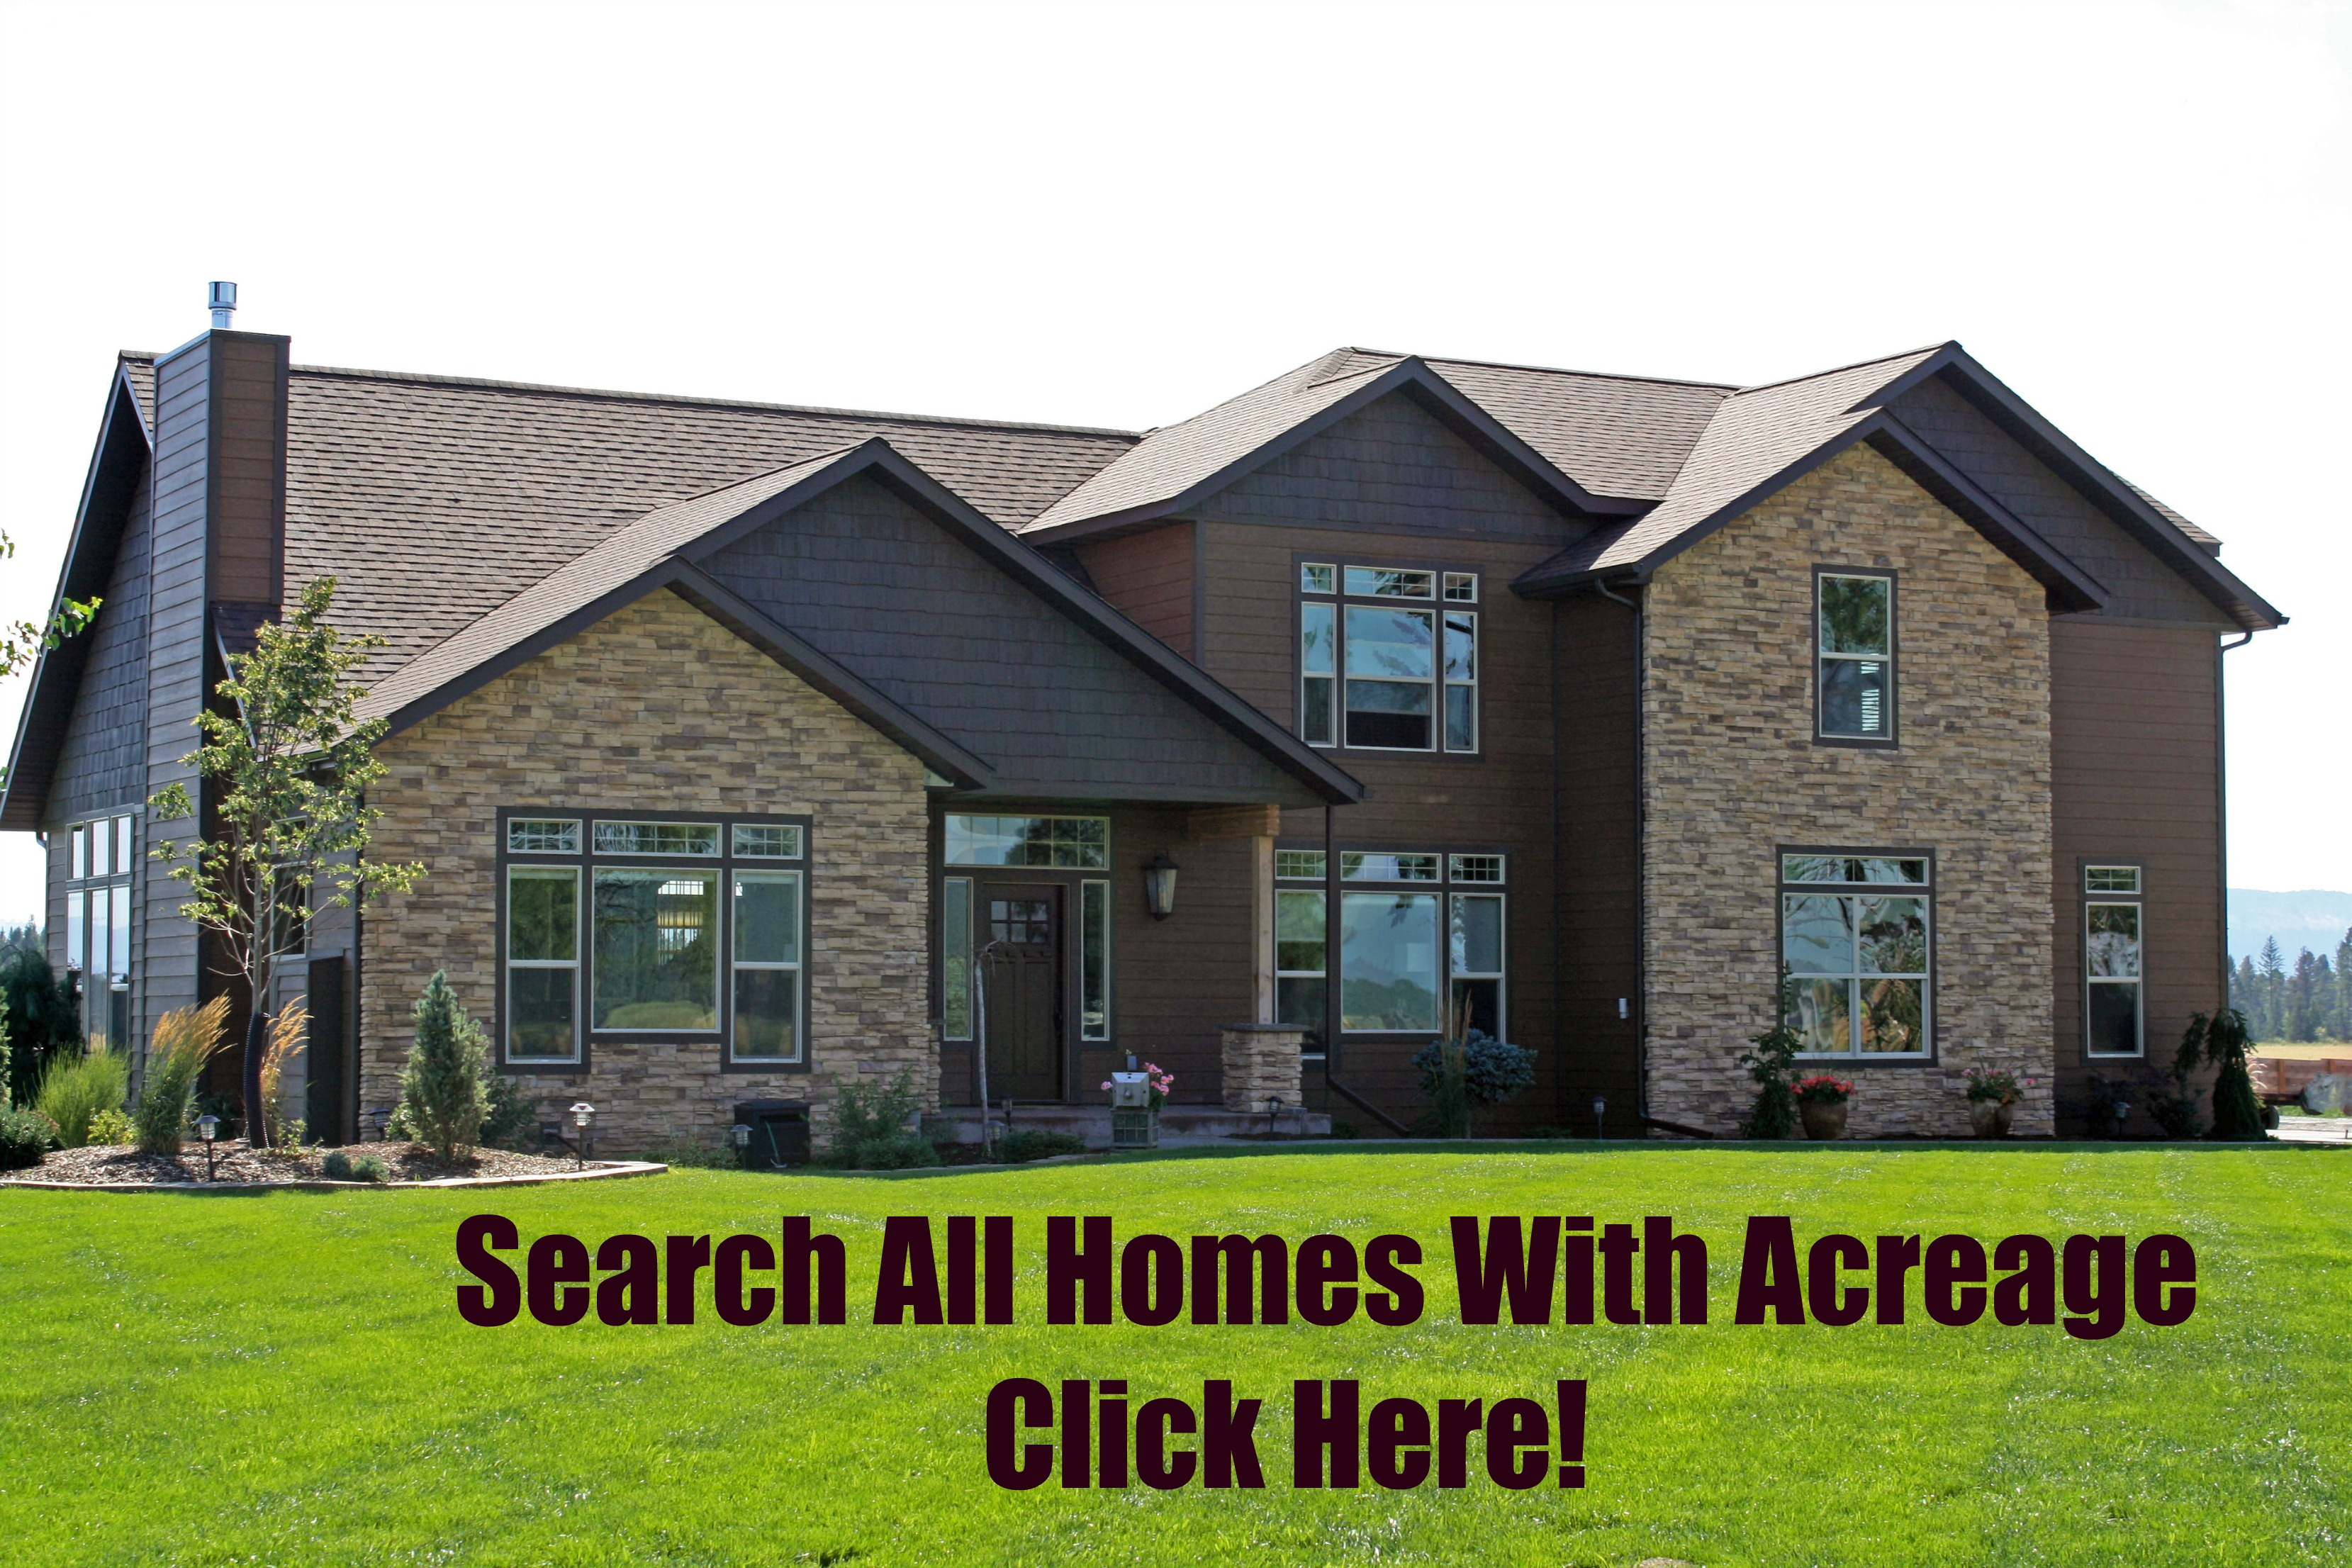 Acreage Home Search